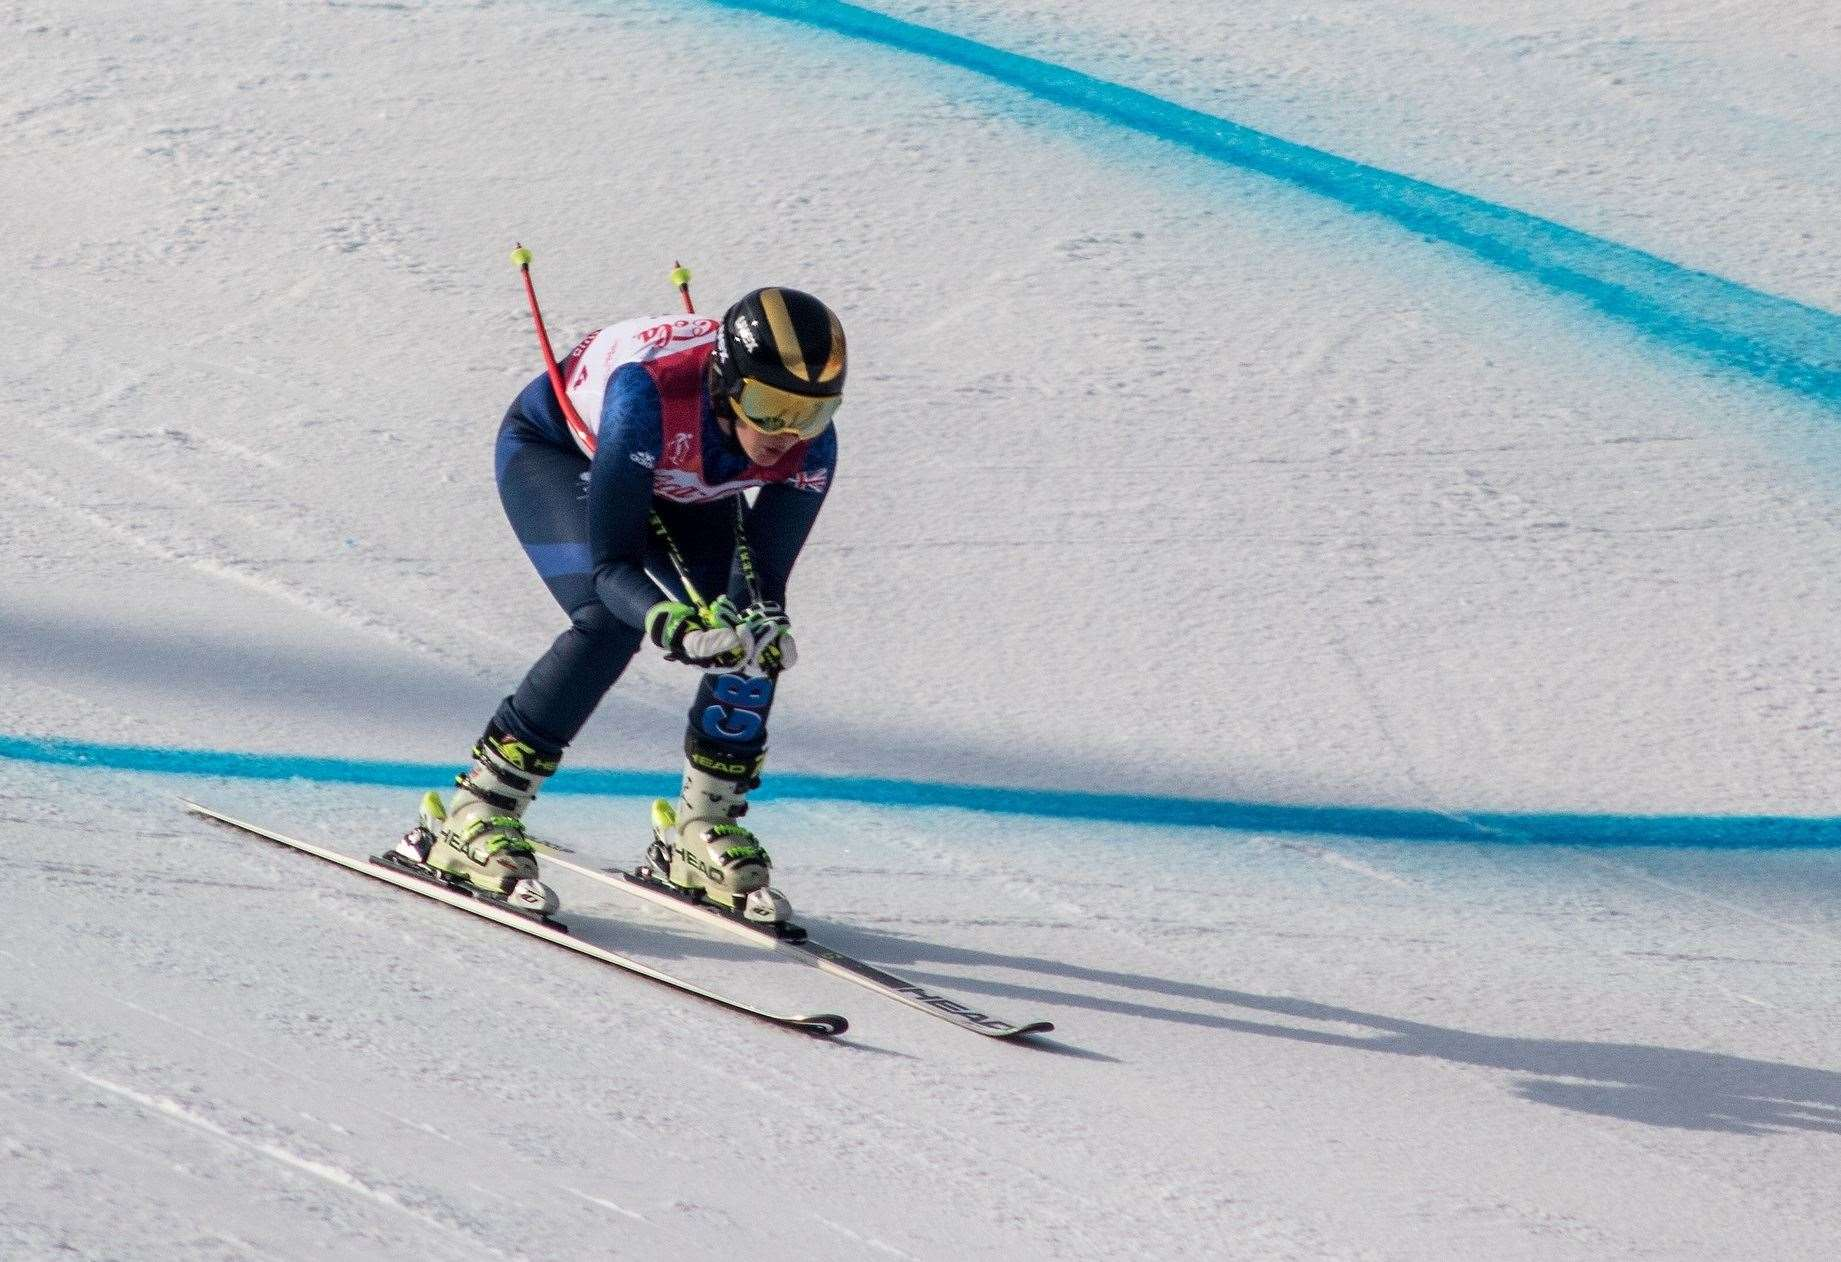 Paralympian's aim to compete in summer and winter games - Kent Online